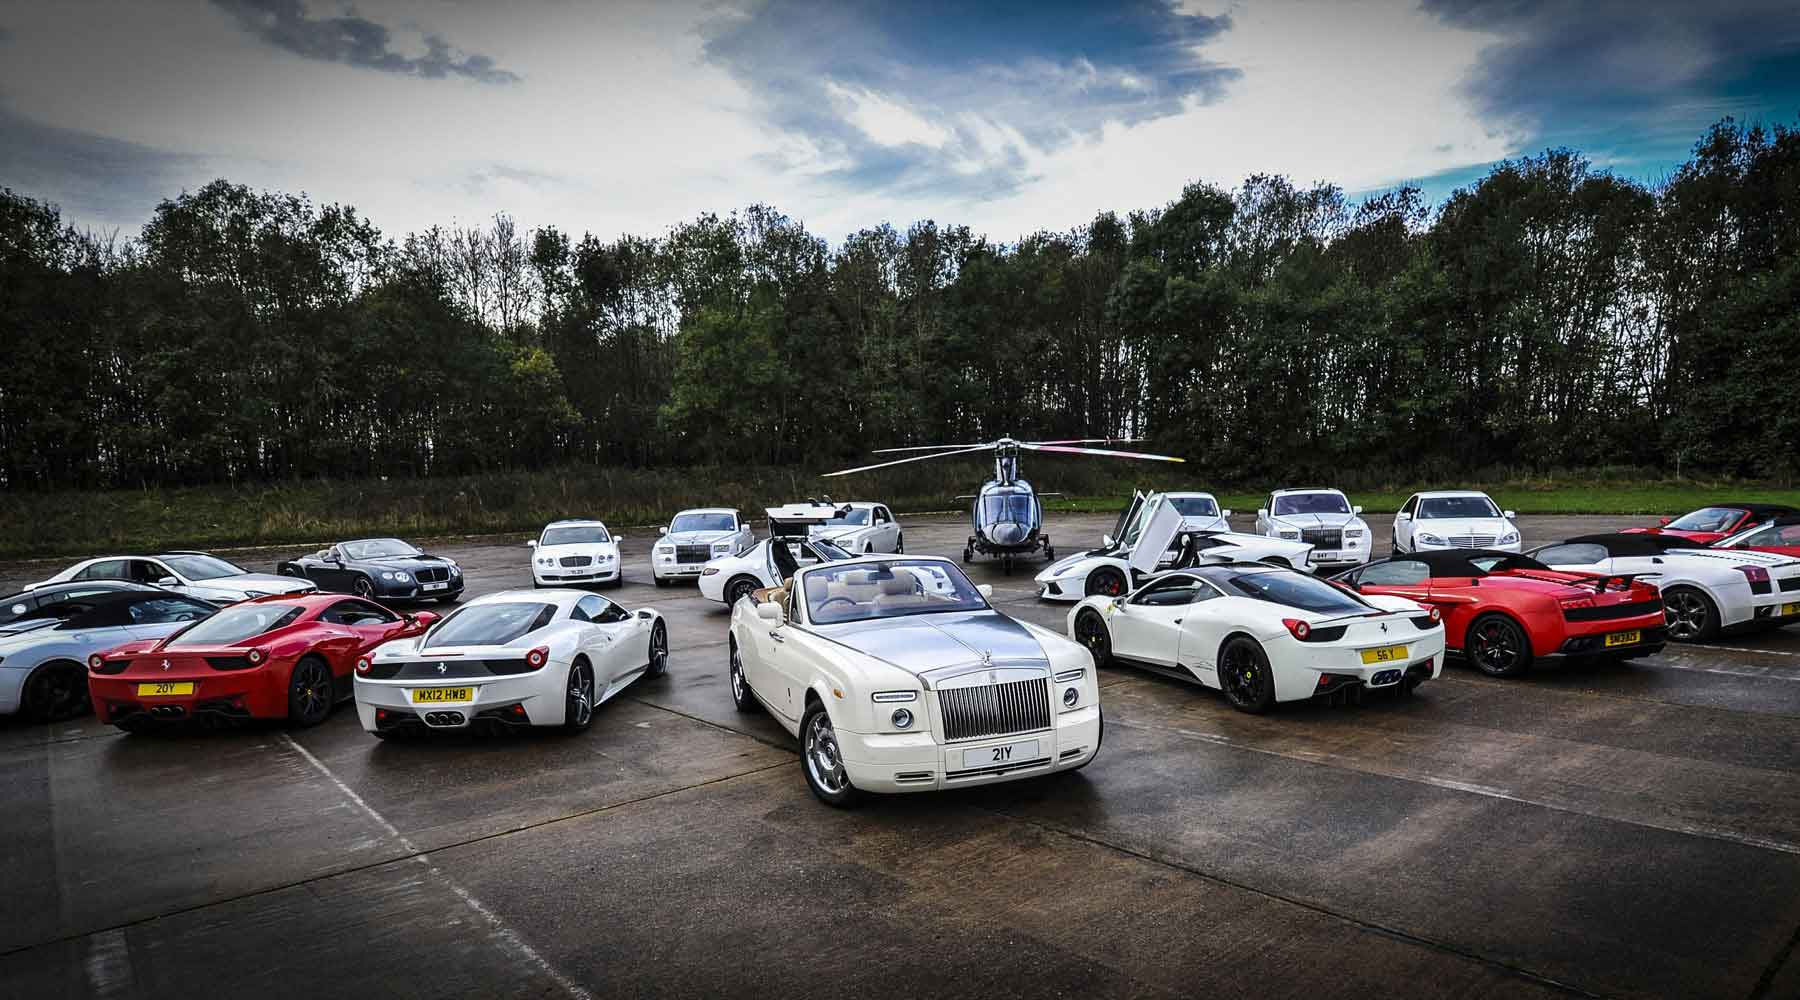 Wedding Cars Become the New Trend for Prom Car Hire